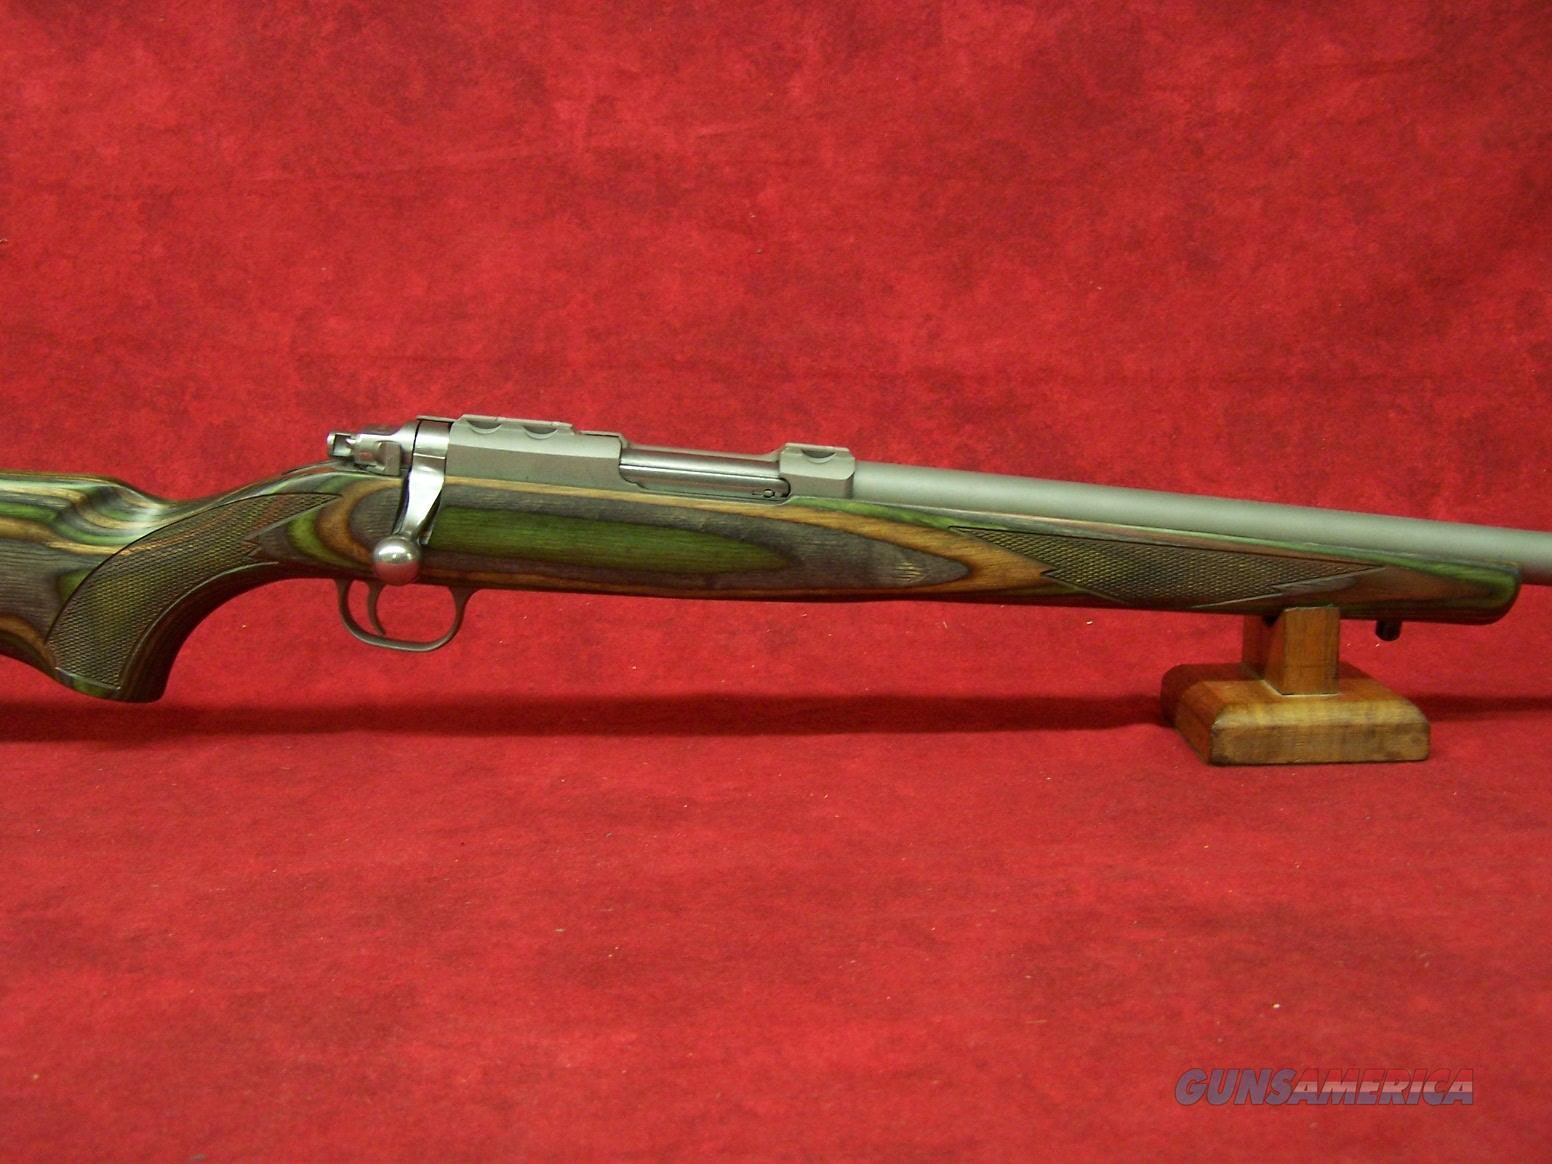 Ruger Model 77/17 .17 Hornet 24 Inch Stainless Steel Barrel Matte Finish No Sights Green Mountain Laminate (07212)  Guns > Rifles > Ruger Rifles > Model 77